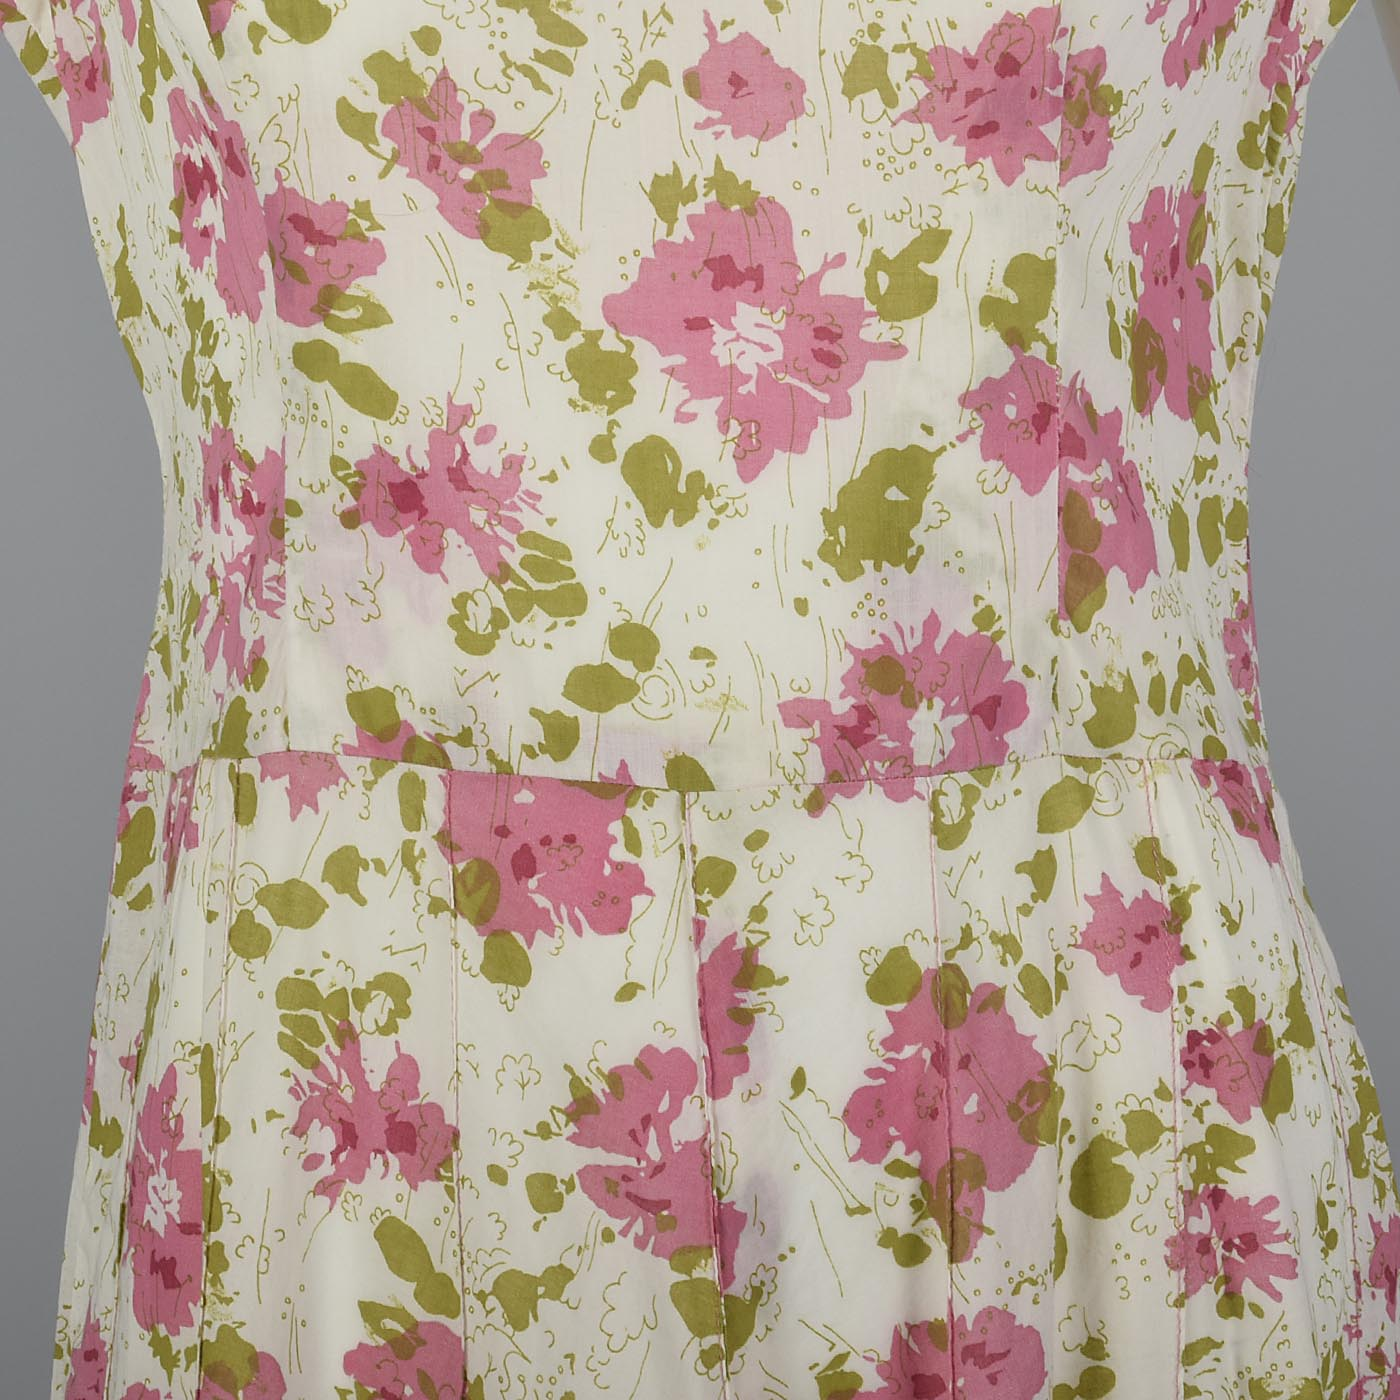 e6dbe2c1edd 1930s Loose Flowy Cotton Simple Summer Day Dress Sleeveless Casual VTG 30s  Pink